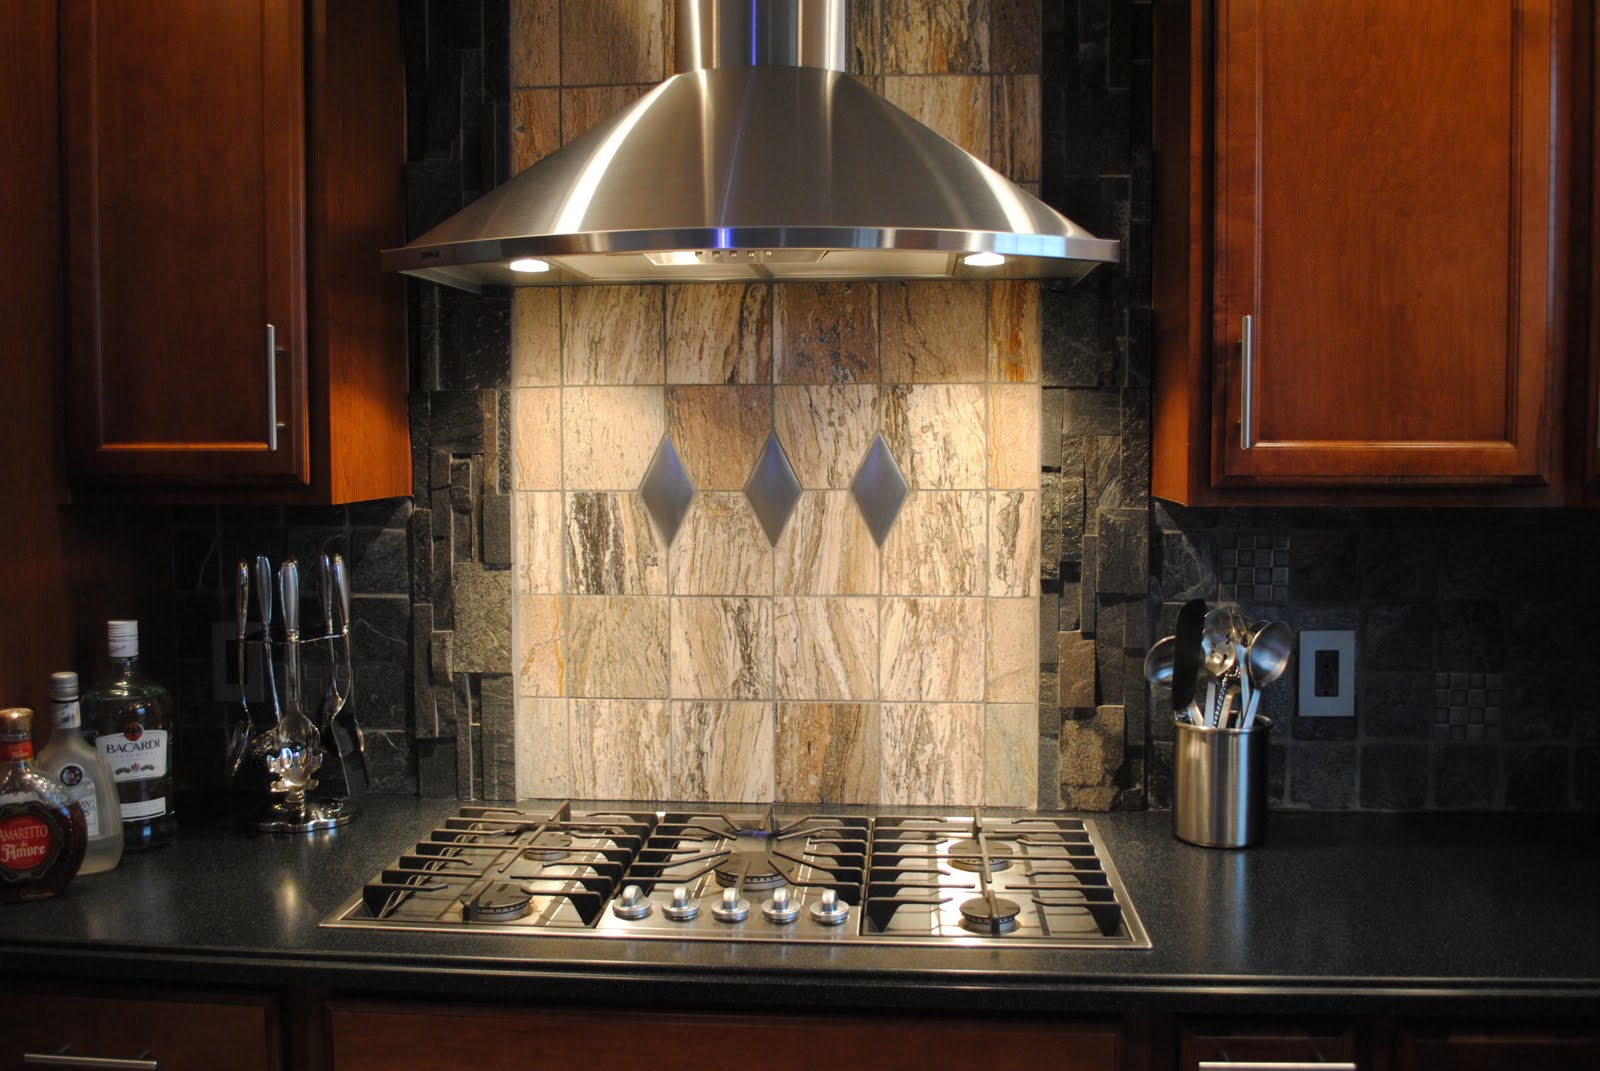 The excellent Designs backsplash for kitchens digital photography